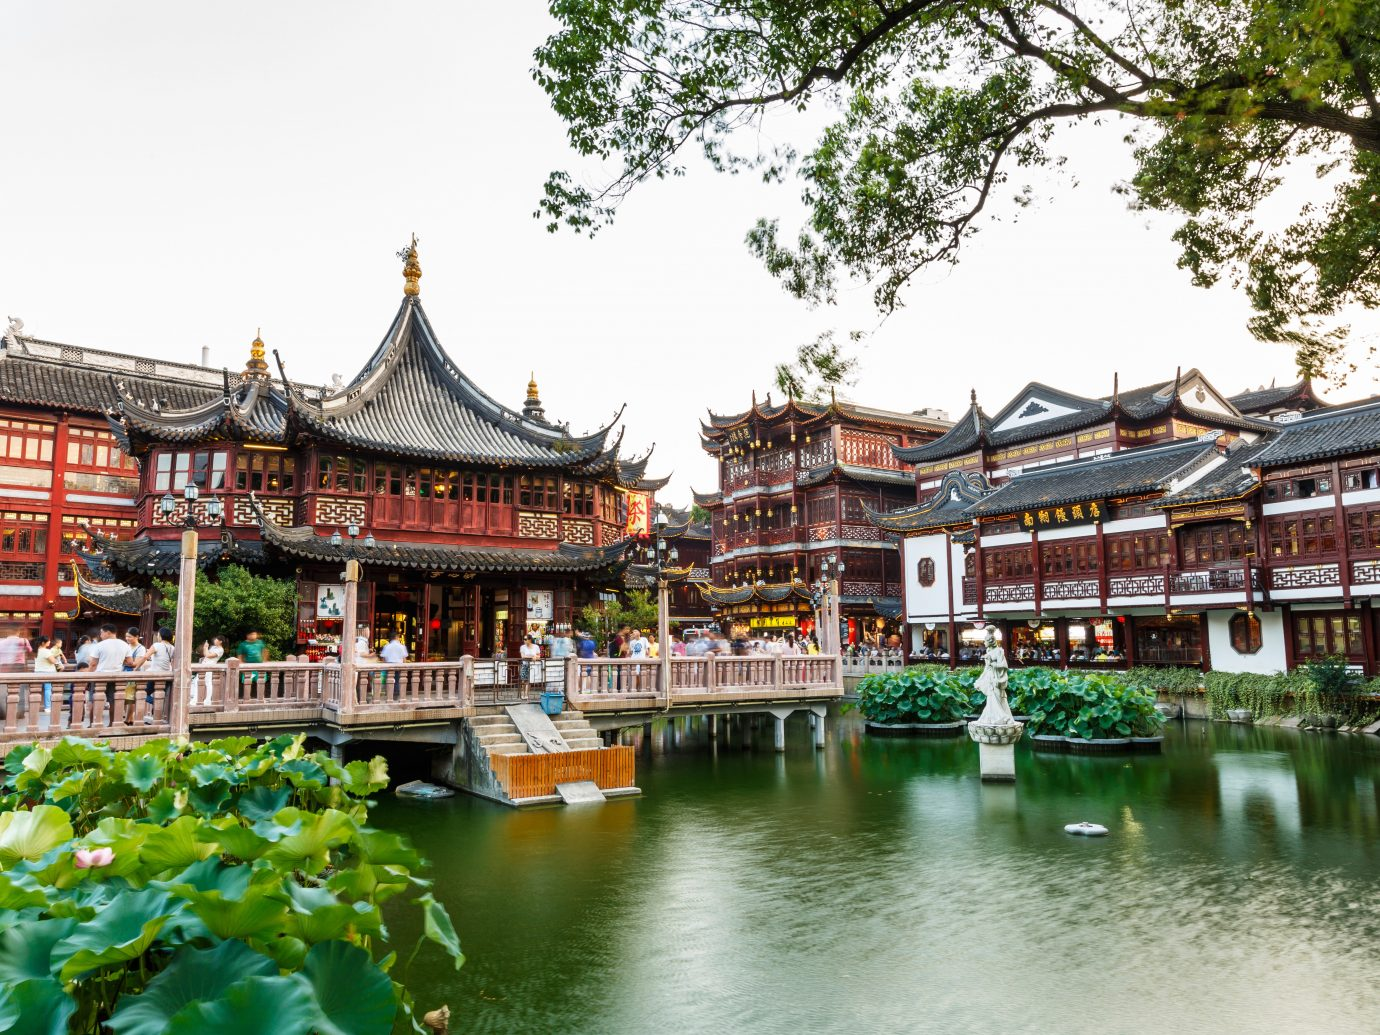 Architecture Buildings Design Exterior Garden Grounds Resort Trip Ideas Waterfront outdoor chinese architecture tree Town temple palace tourism resort town estate shrine shinto shrine place of worship